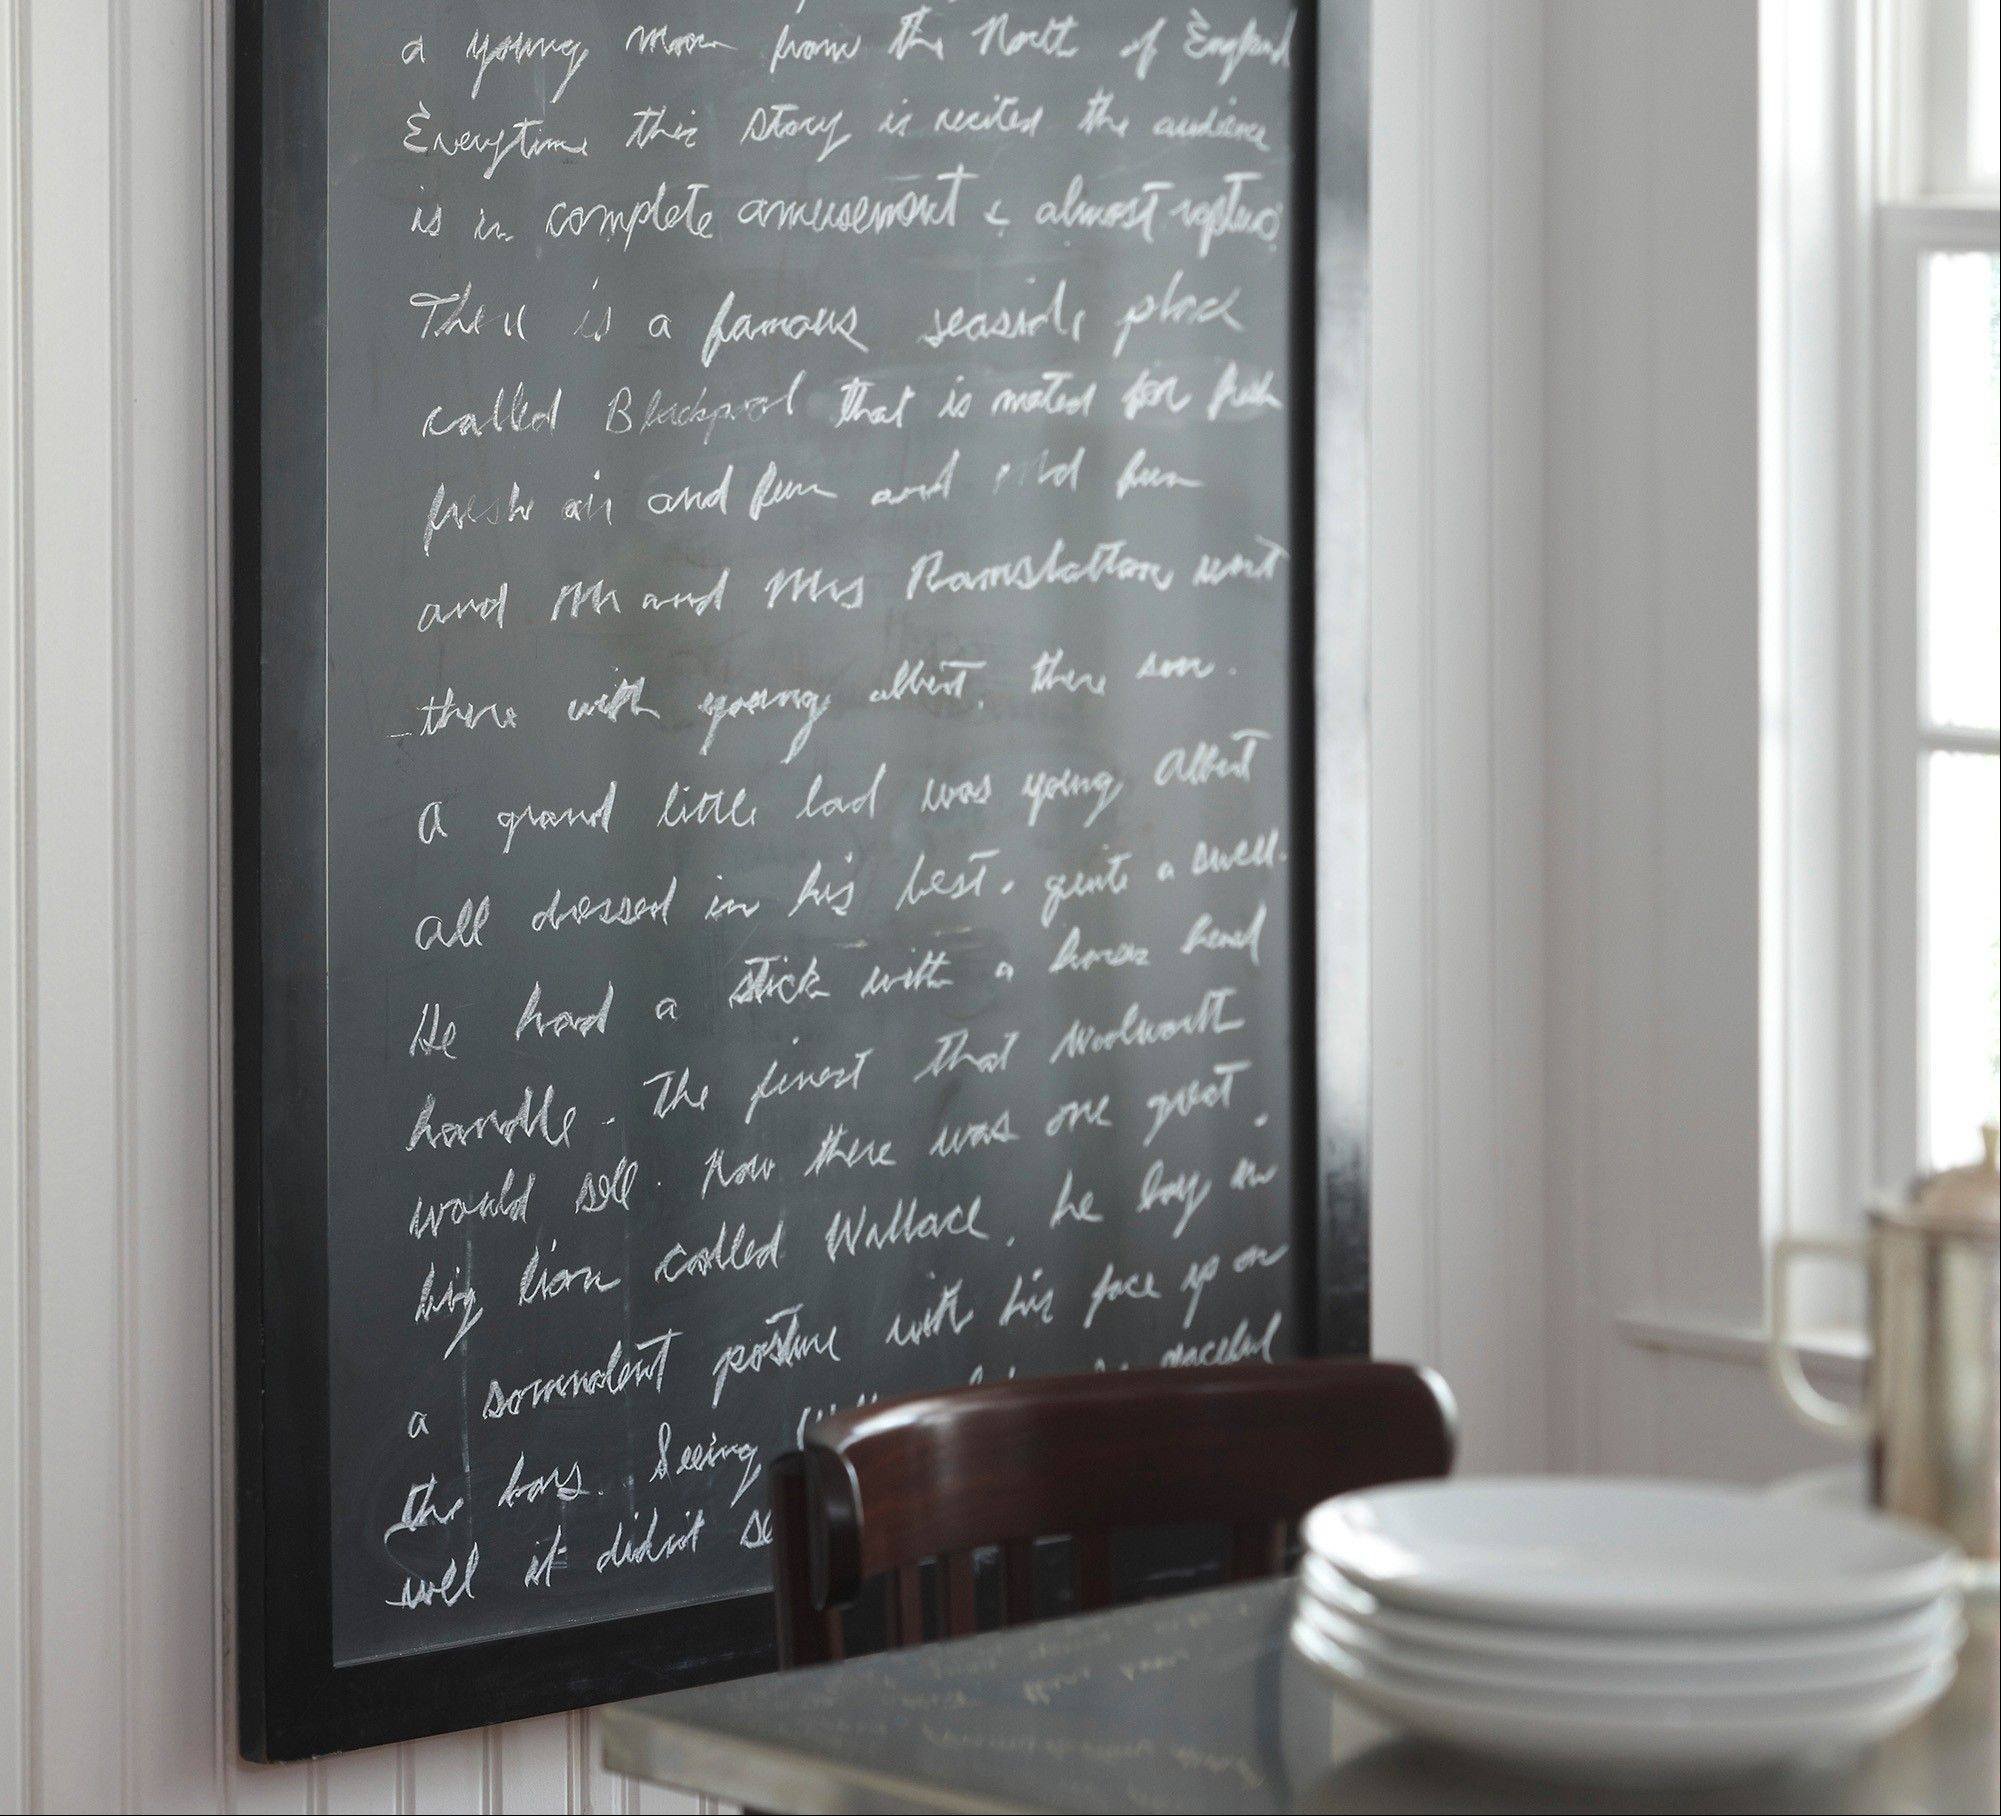 For those who don't want to commit to chalkboard paint in your home office, there's Pottery Barn's Framed Chalkboard.